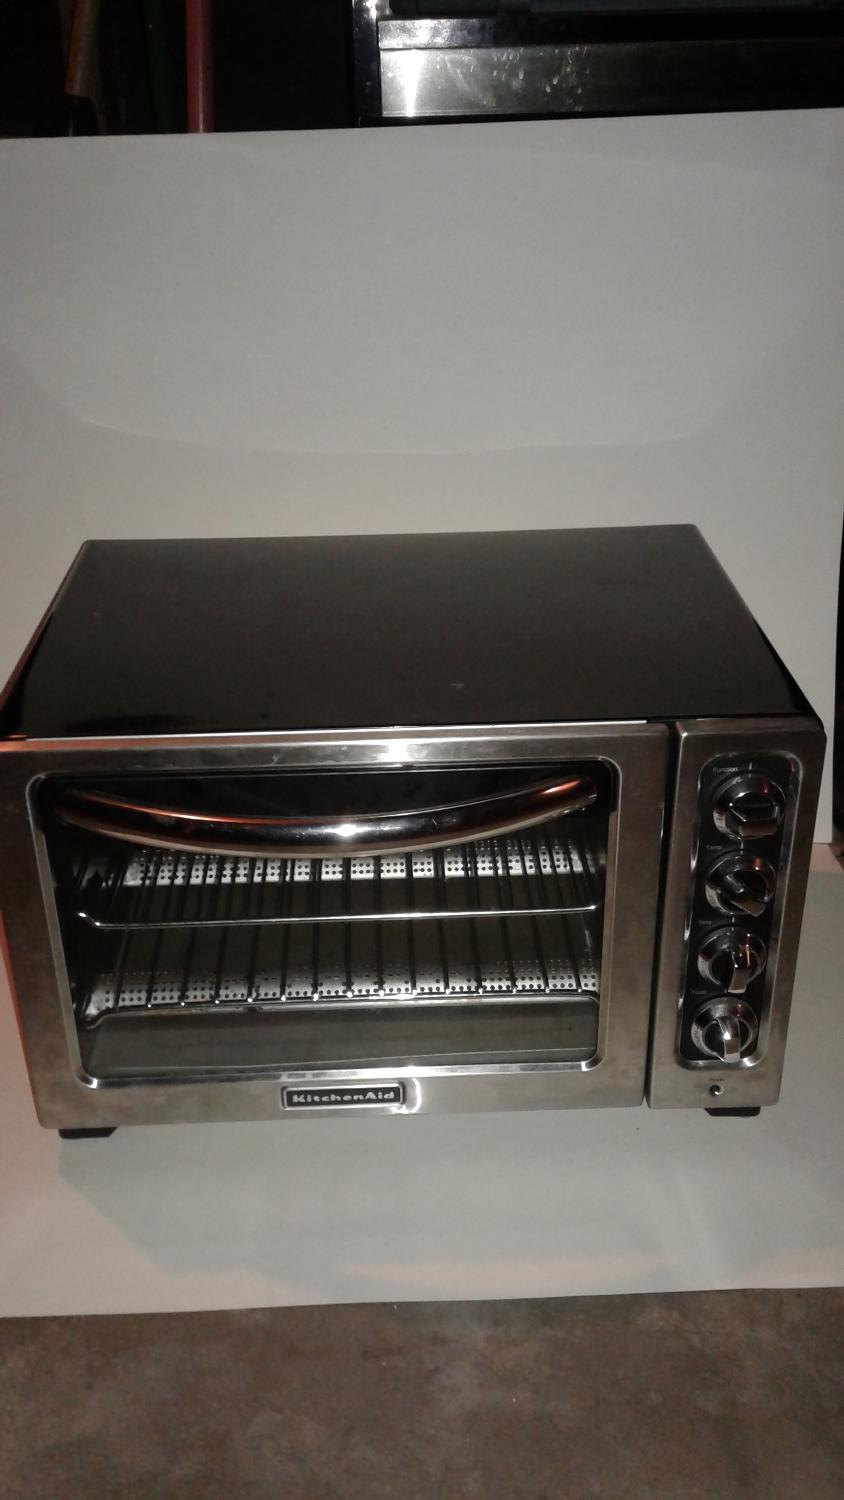 Best Kitchen Aid Counter Top Toaster Oven For Sale In